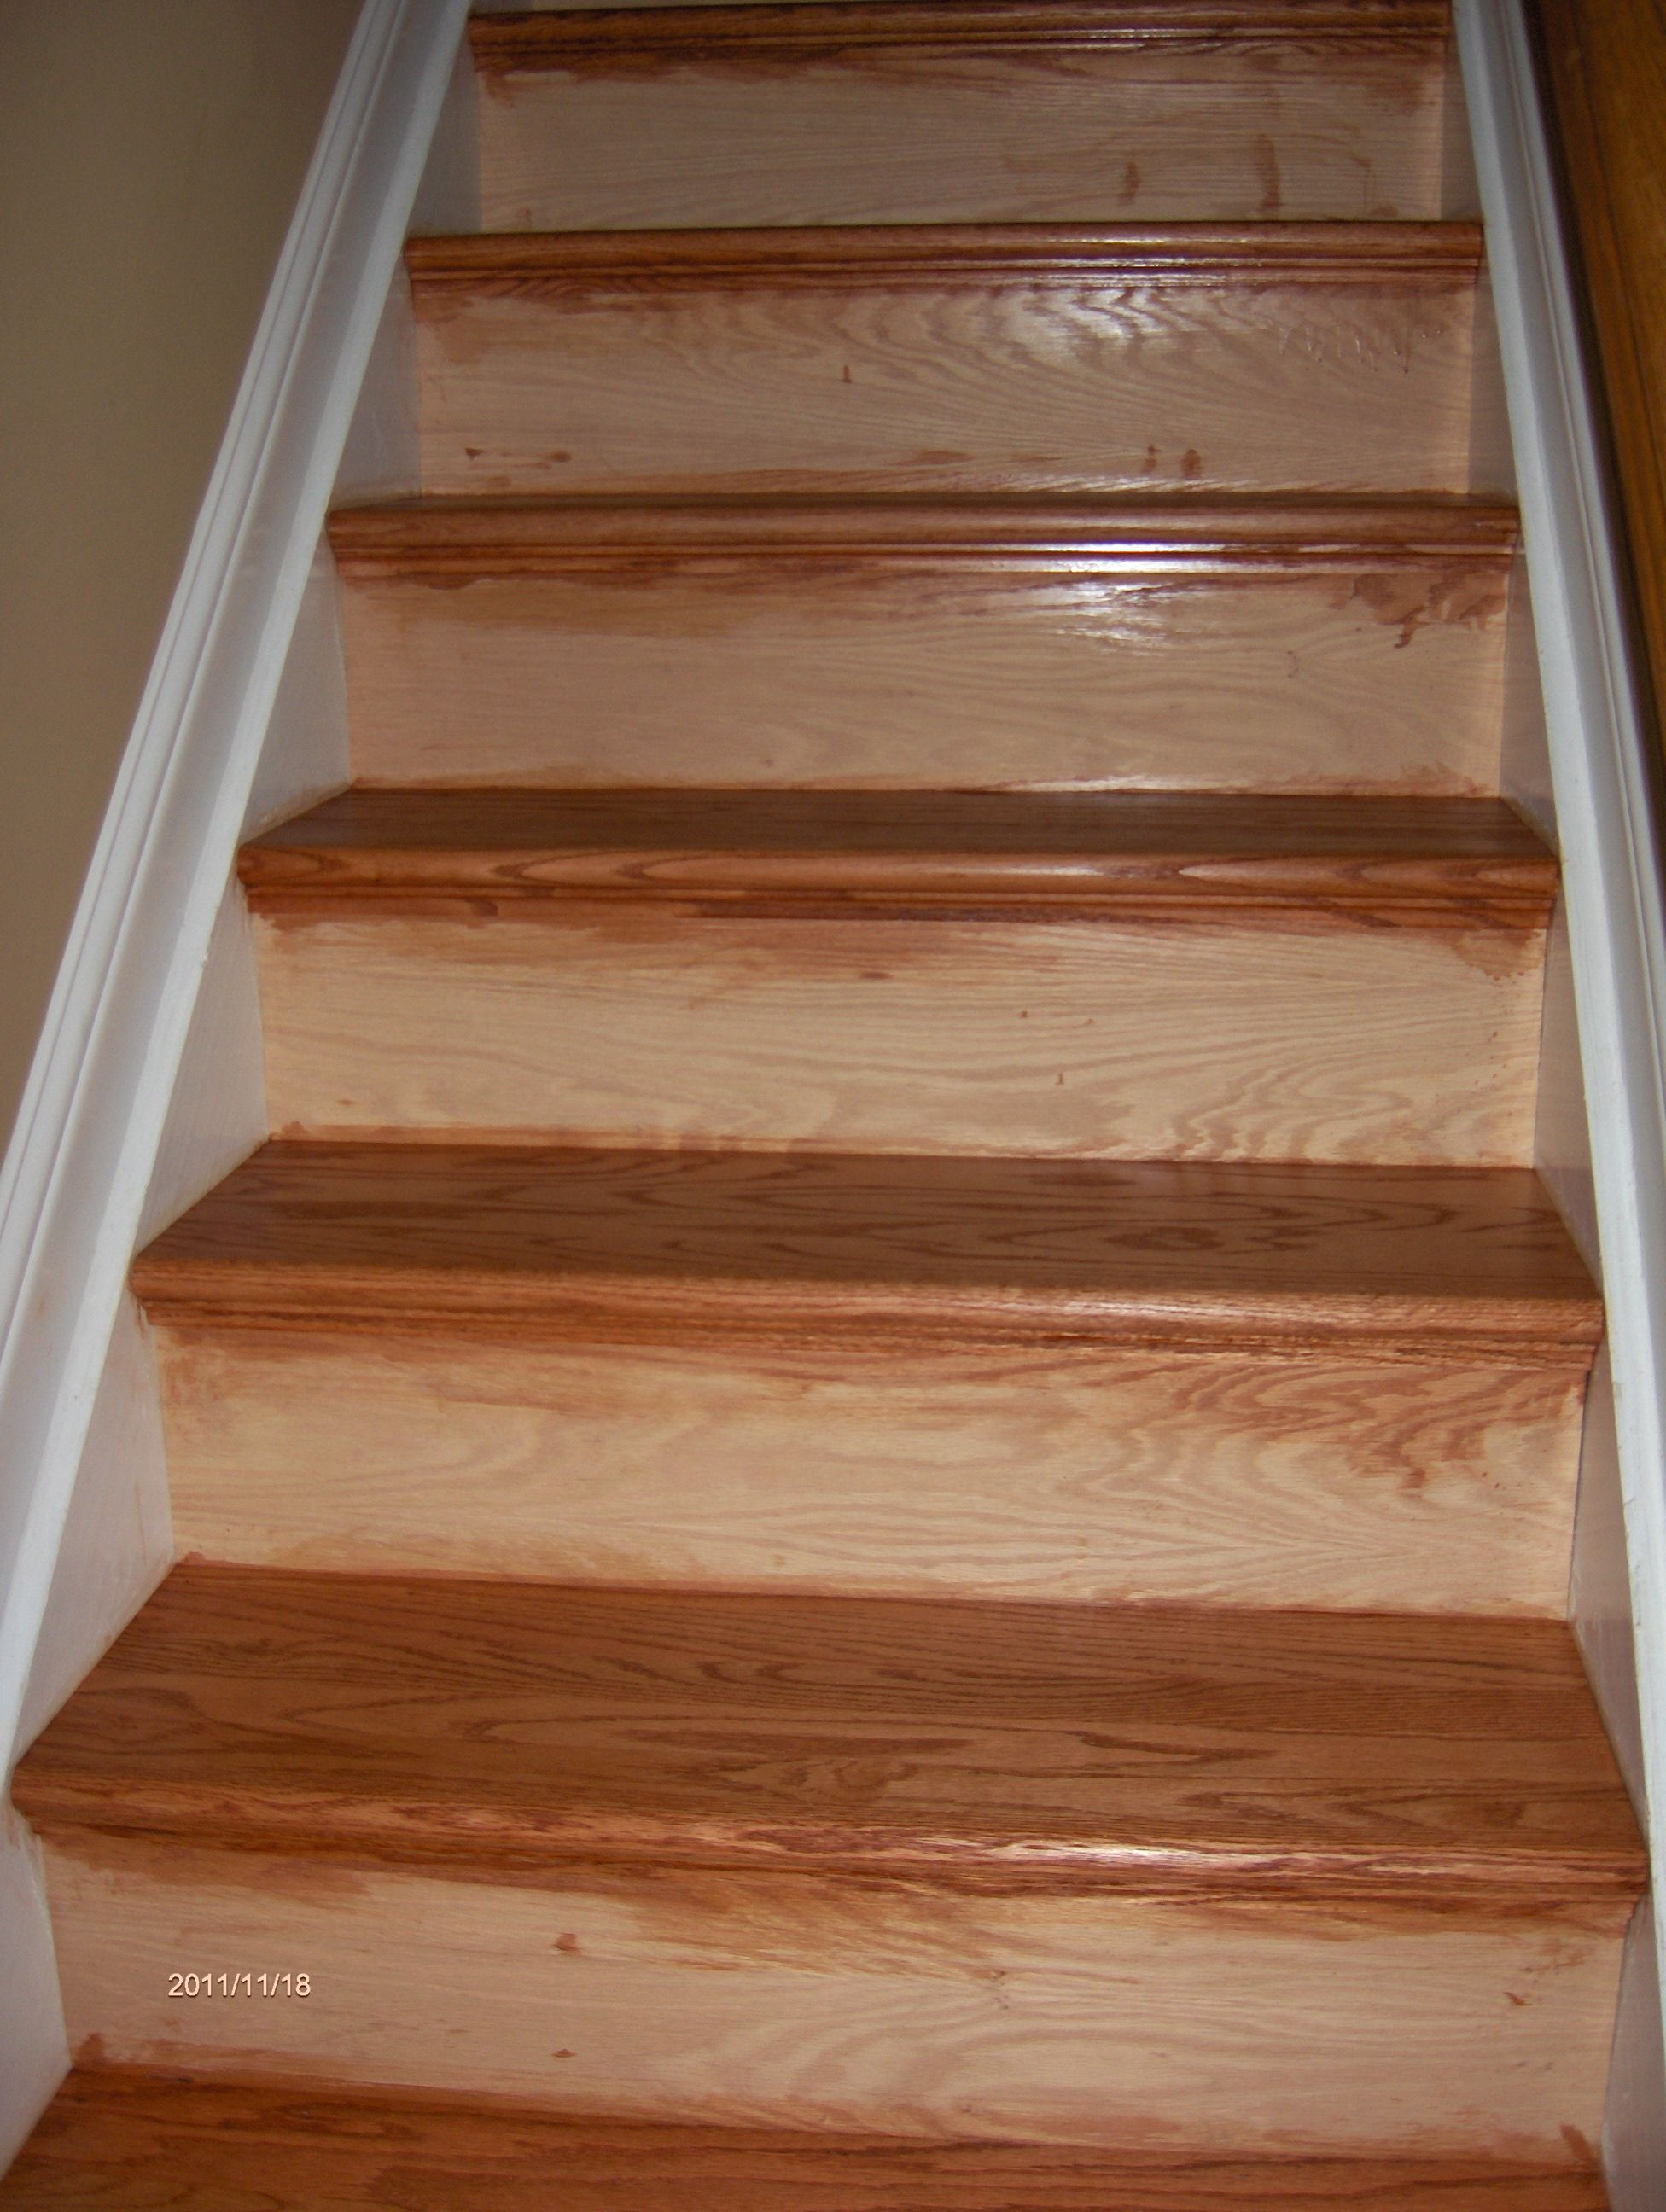 Best New Oak Stair Treads Installed Over Old Pine Treads We 400 x 300